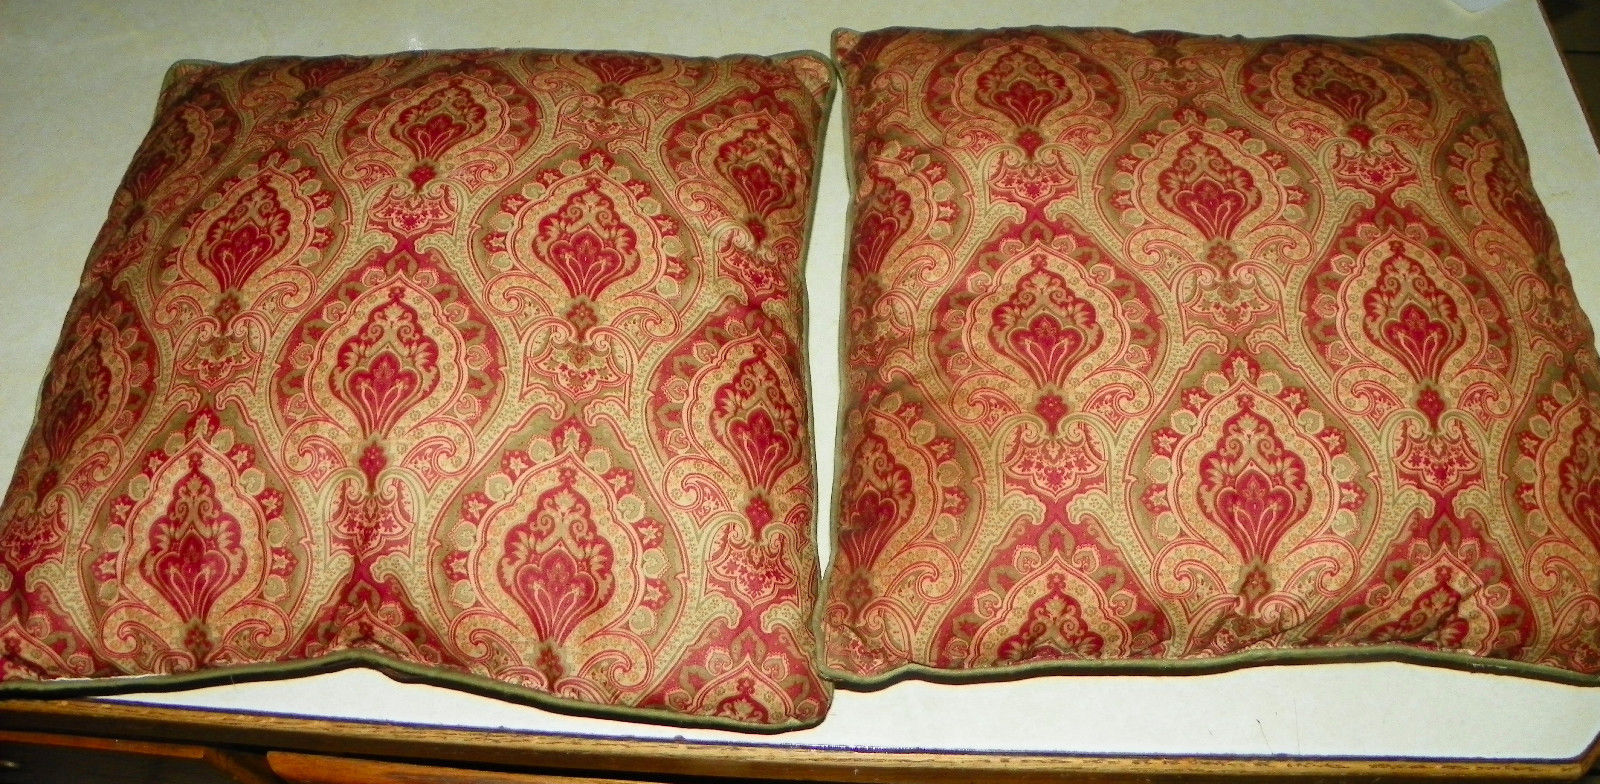 Primary image for Pair of Burgundy Beige Cotton Print Decorative Throw Pillows  16 x 16